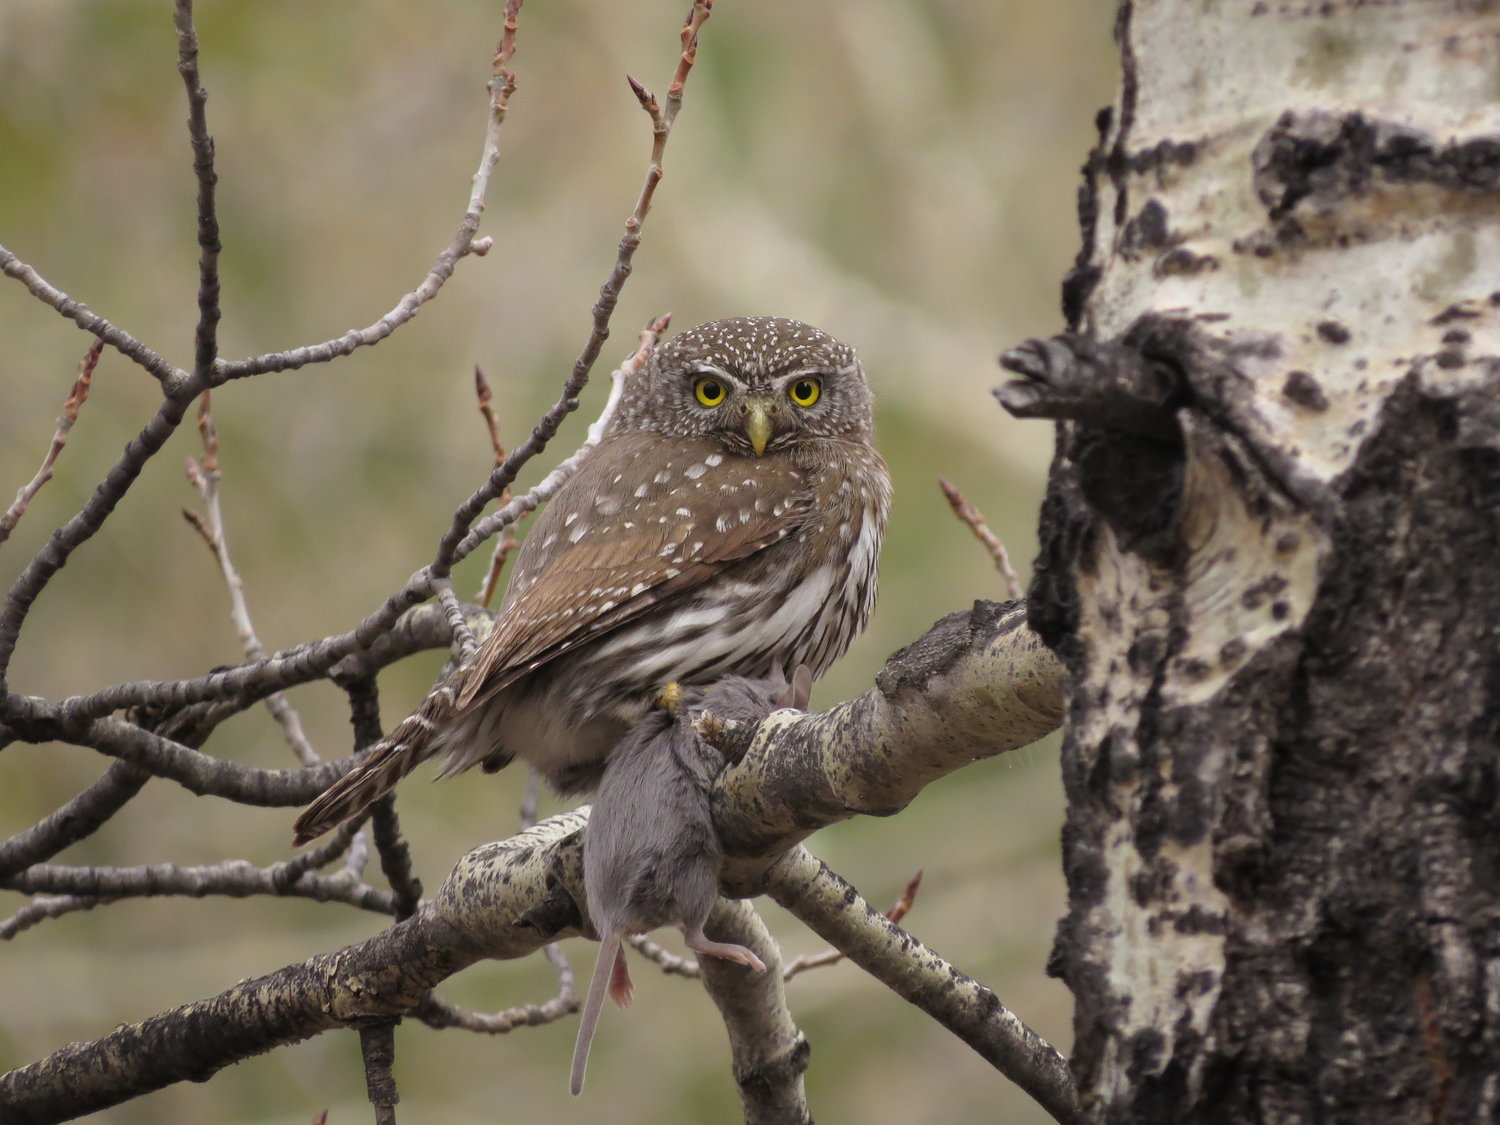 northern pygmy owl research - Picture Of Owl